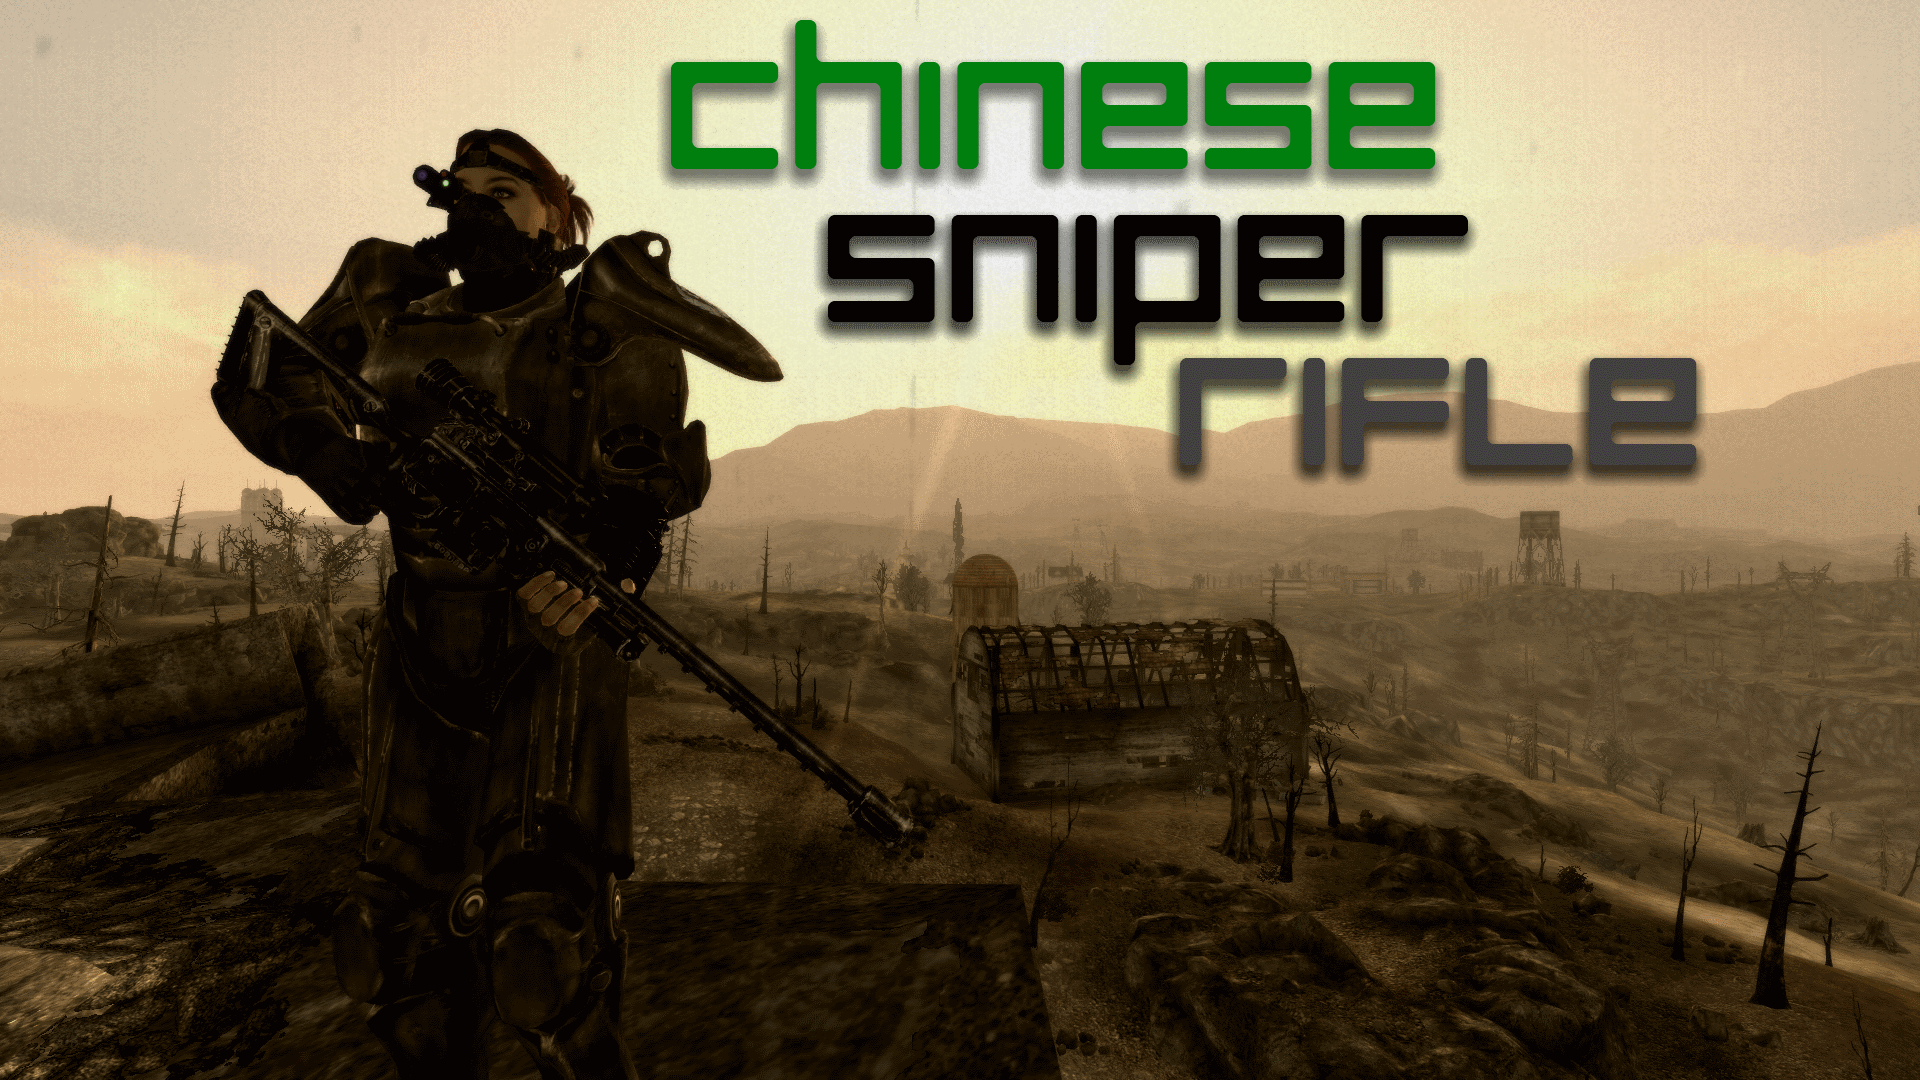 Chinese Sniper Rifle - Unique Weapon at Fallout3 Nexus - mods and community